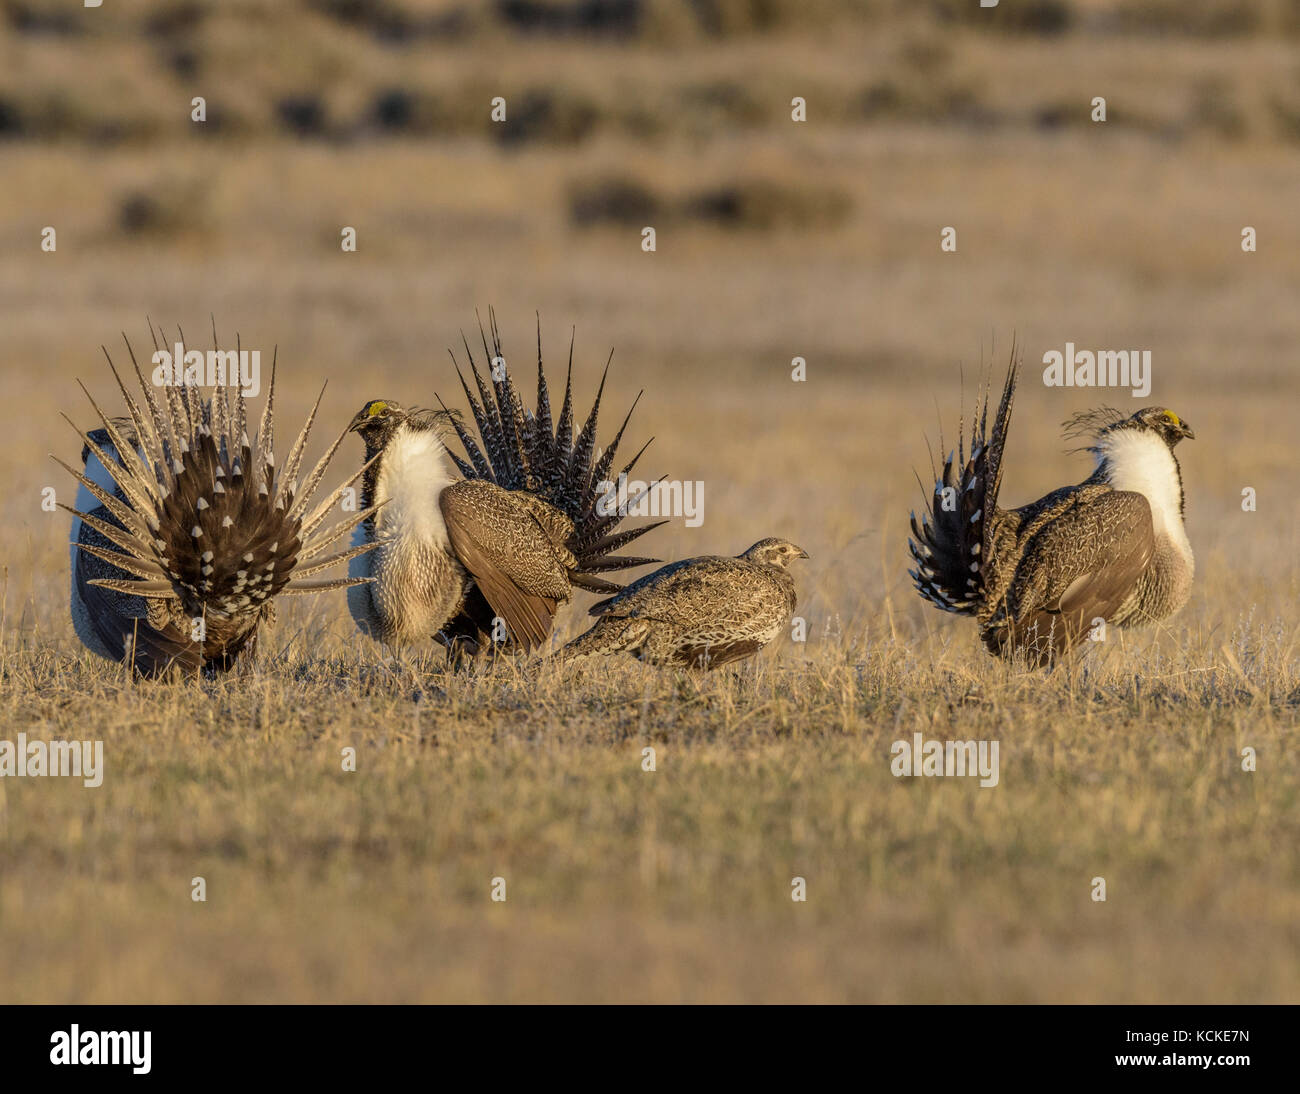 Sage Grouse, Centrocercus urophasianus, males dancing on their lek around female, Montana, USA - Stock Image